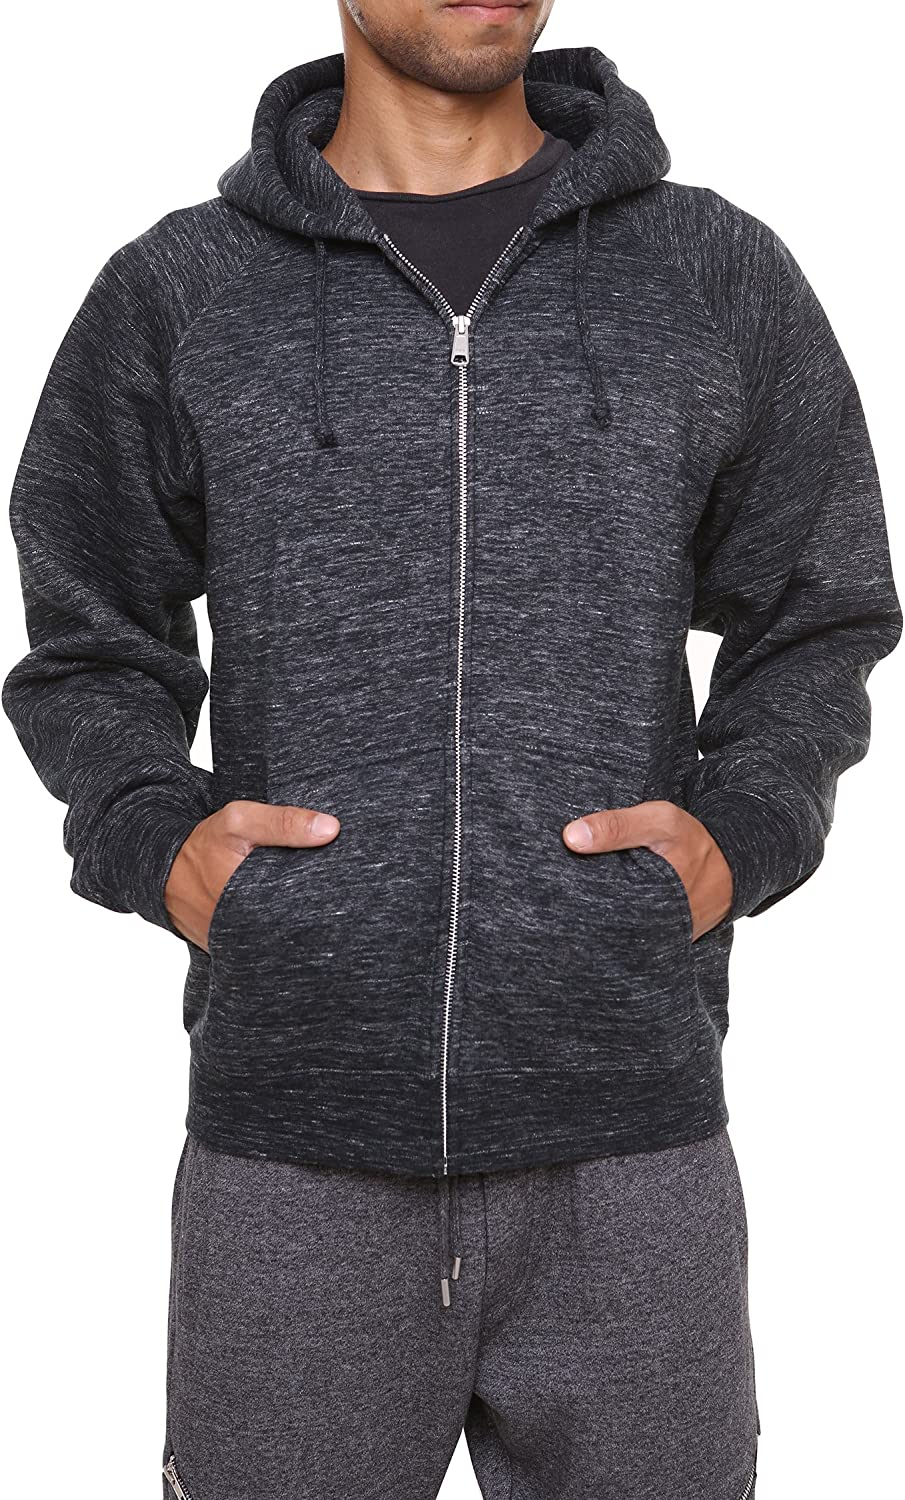 FORBIDEFENSE Men's Sweatshirt Hoodies Full Sleeve-Front Zip Premium Hood 2 Split Pocket